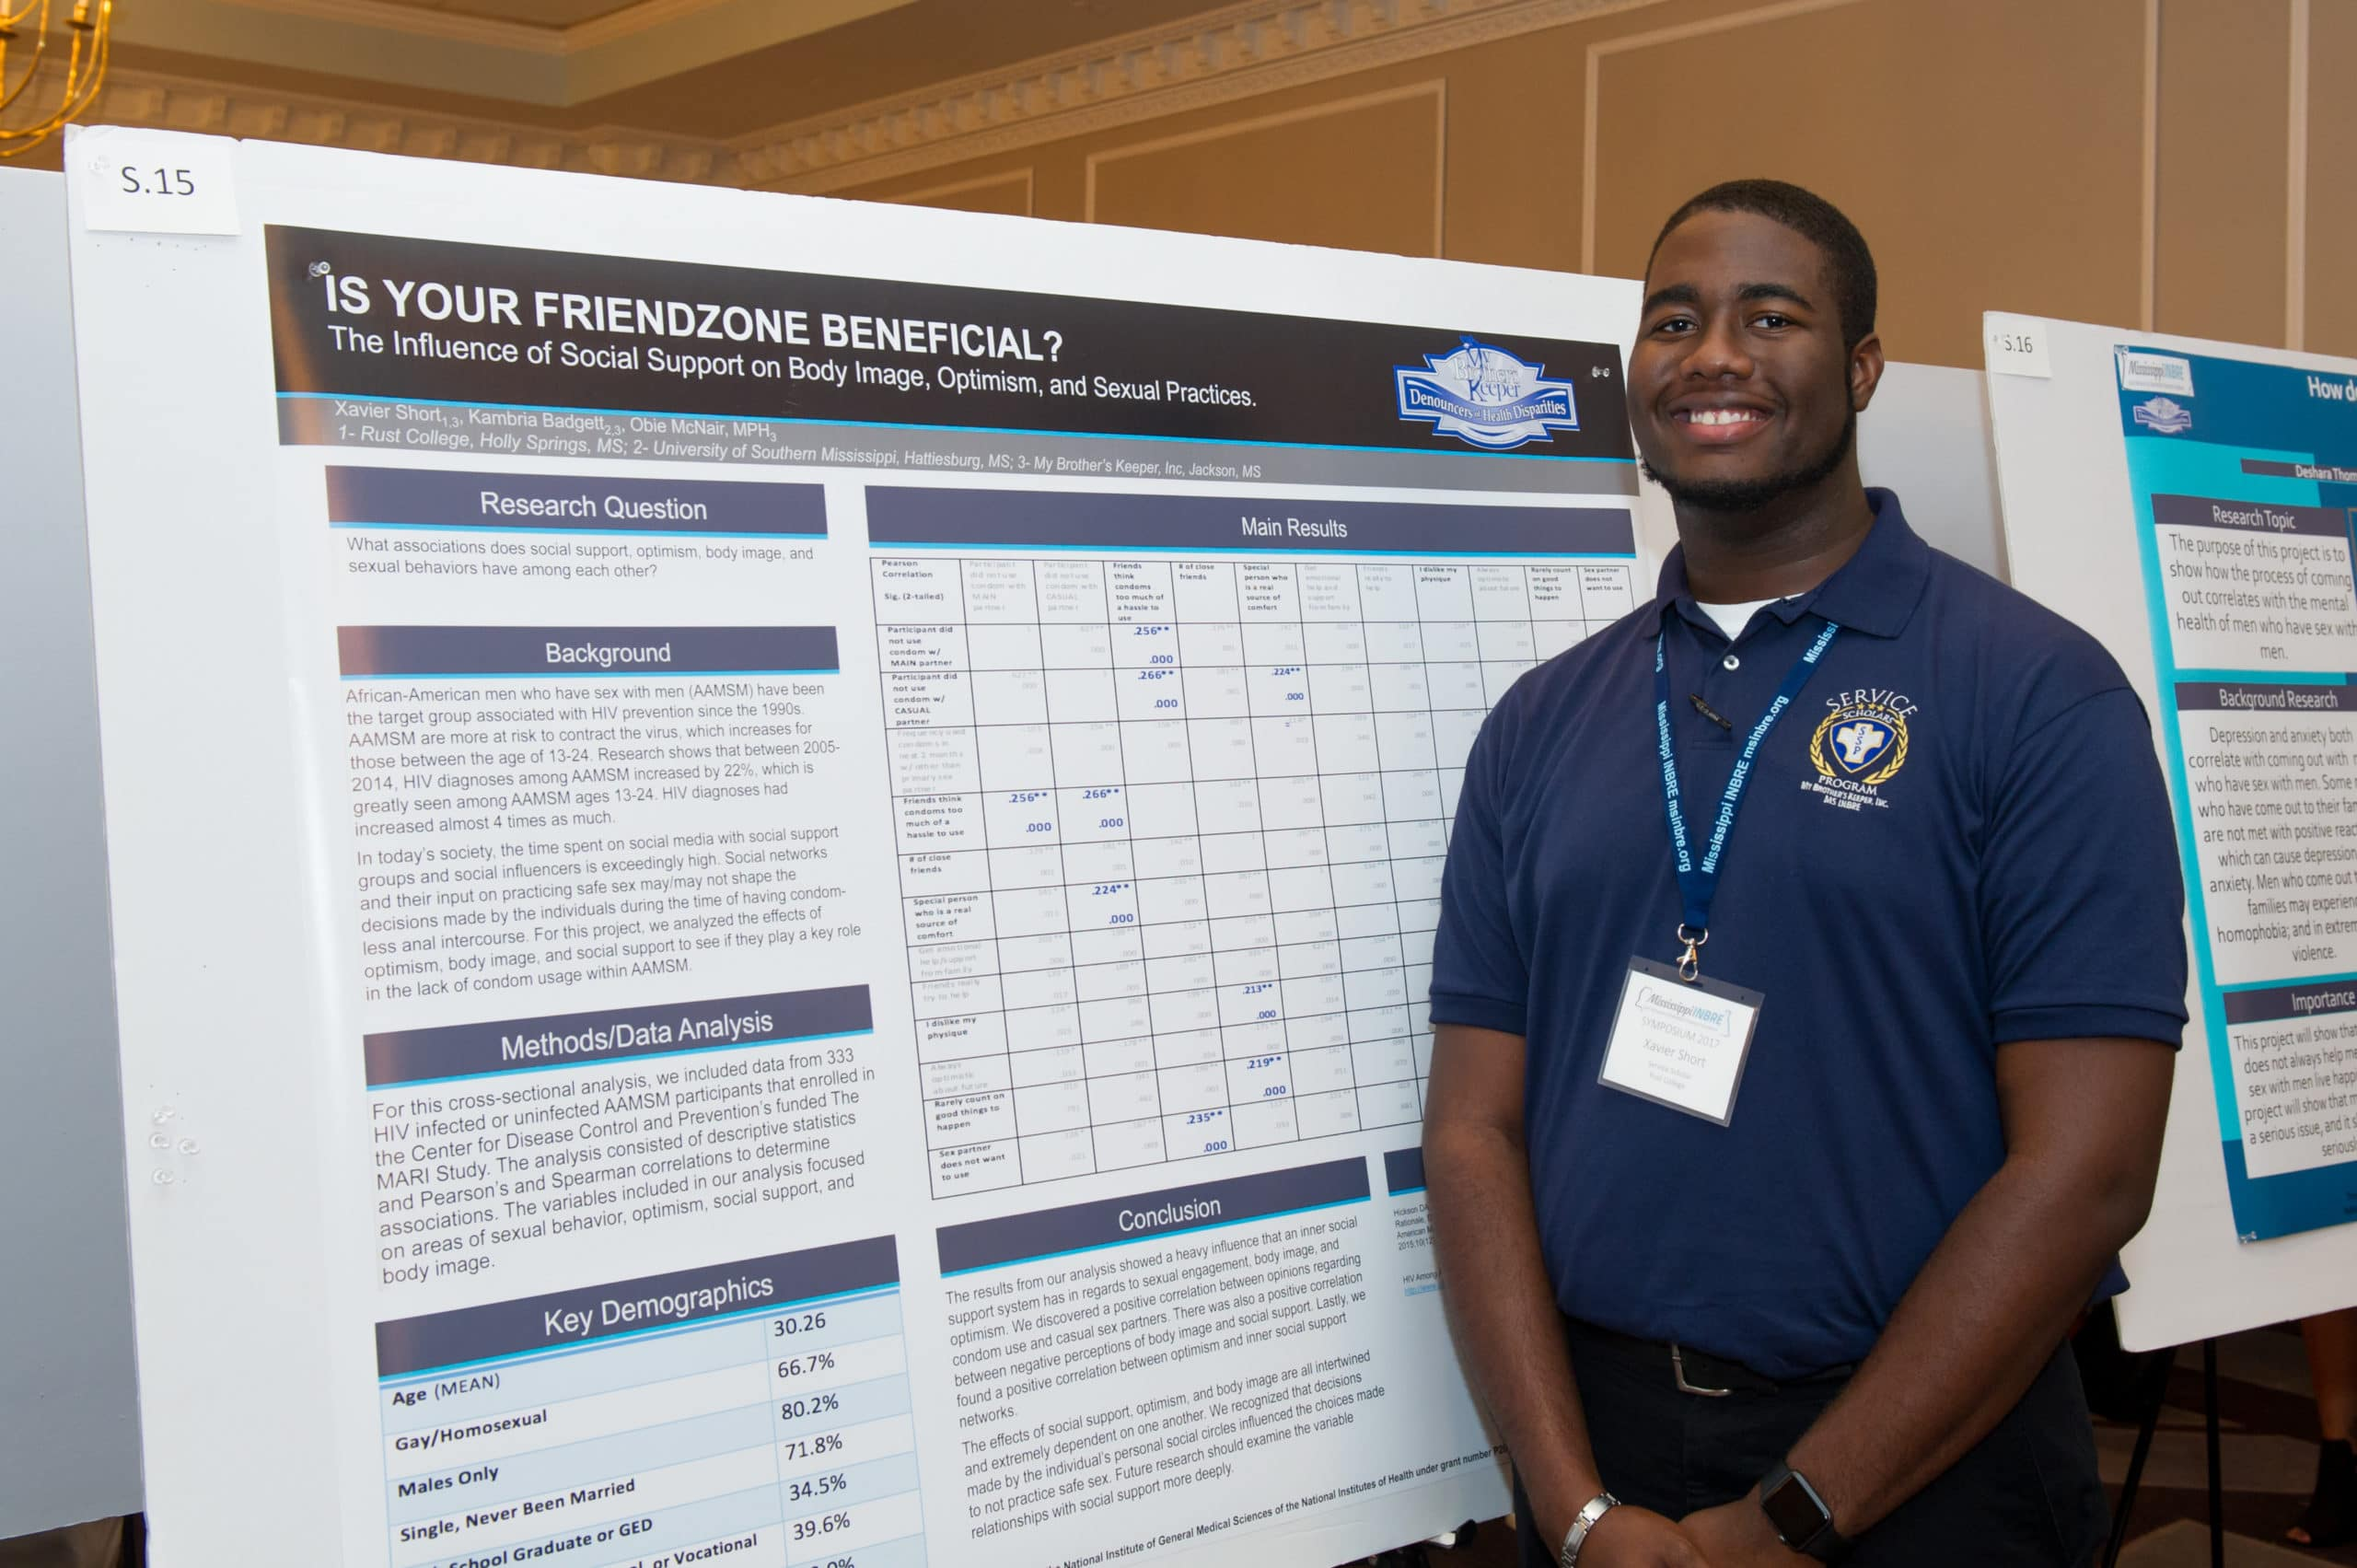 Rust College Student, Xavier Short learned how to be an asset to his community through the Service Scholars Program